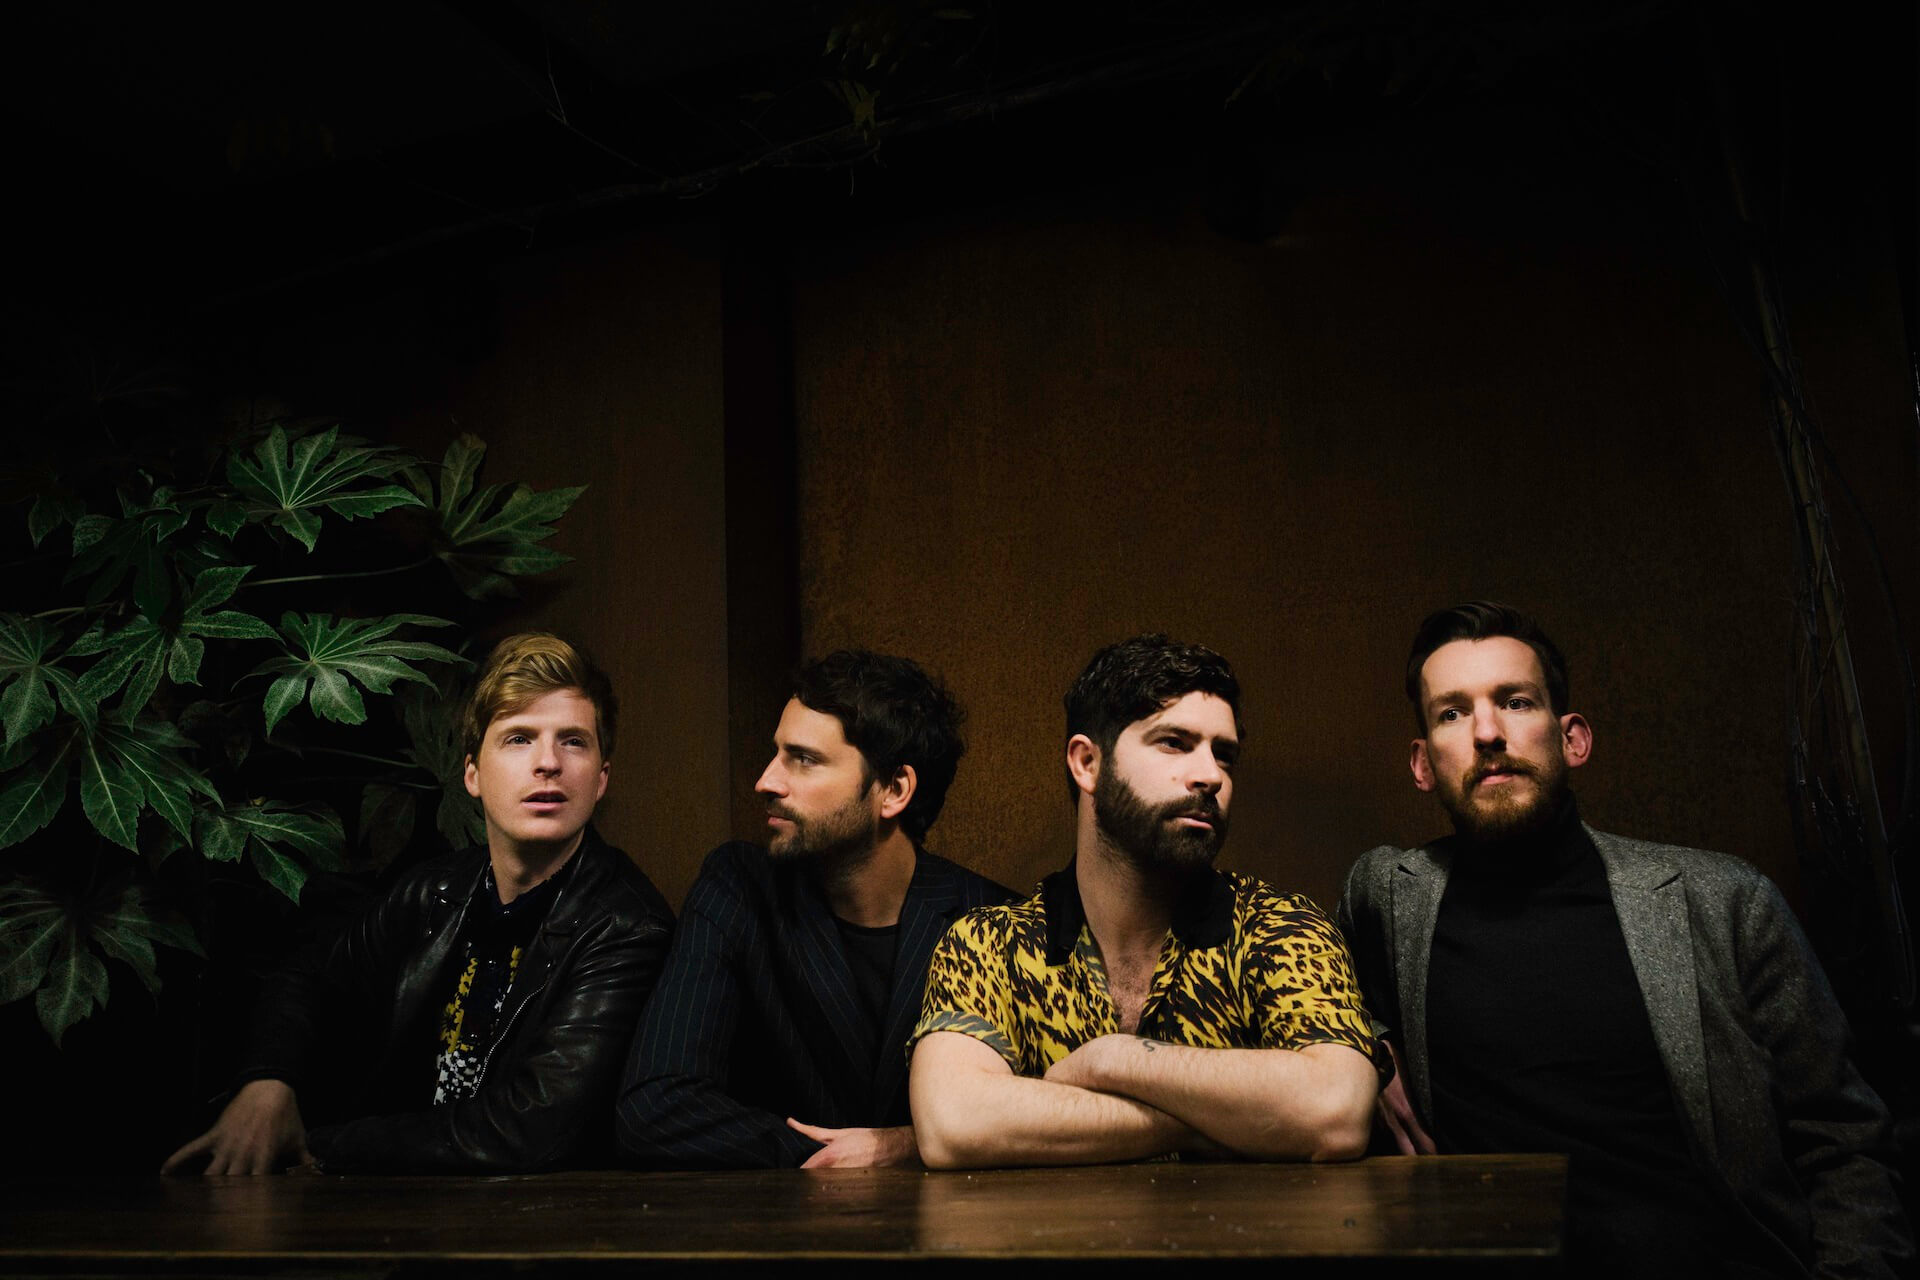 Foals珠玉の最新作『Everything Not Saved Will Be Lost Part 1』から紐解く「UKロックの雄」その軌跡 music190314_foals_1